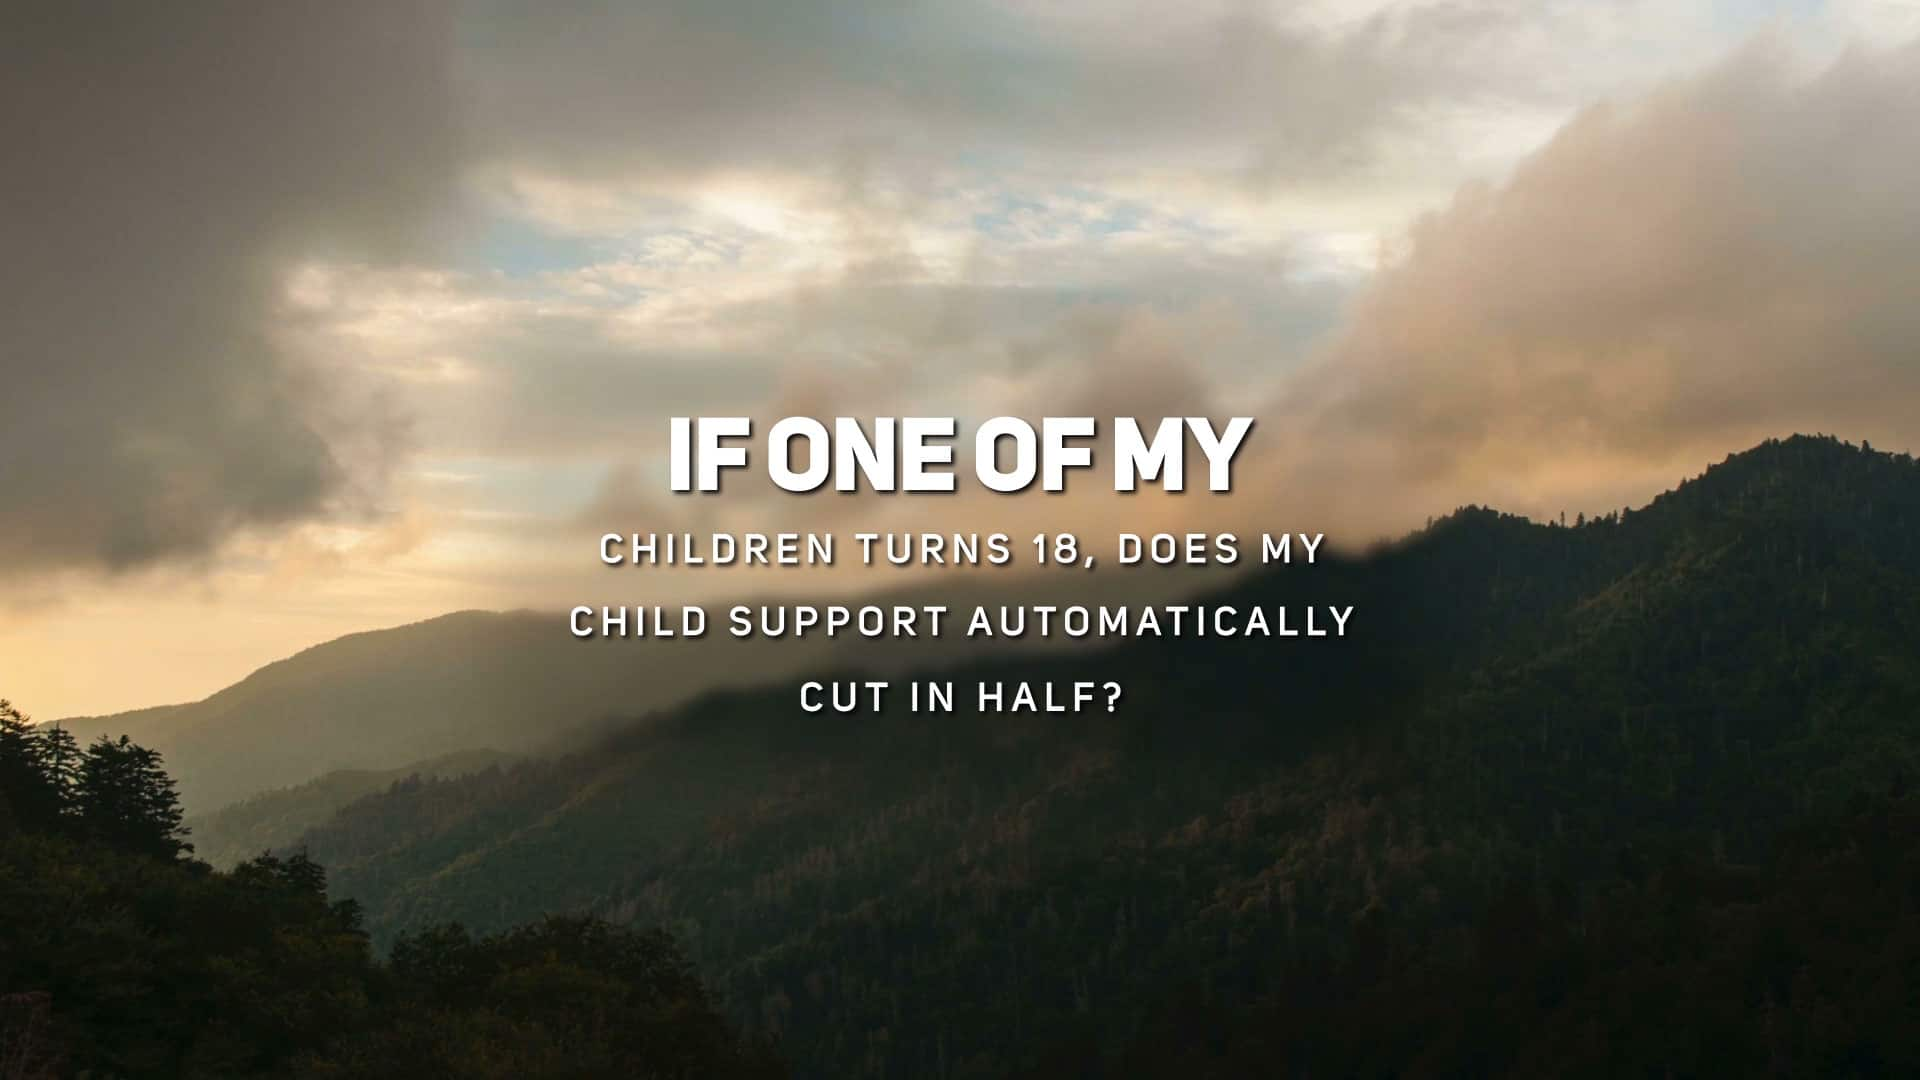 If One of My Children turns 18, Does My Child Support Automatically Cut in Half